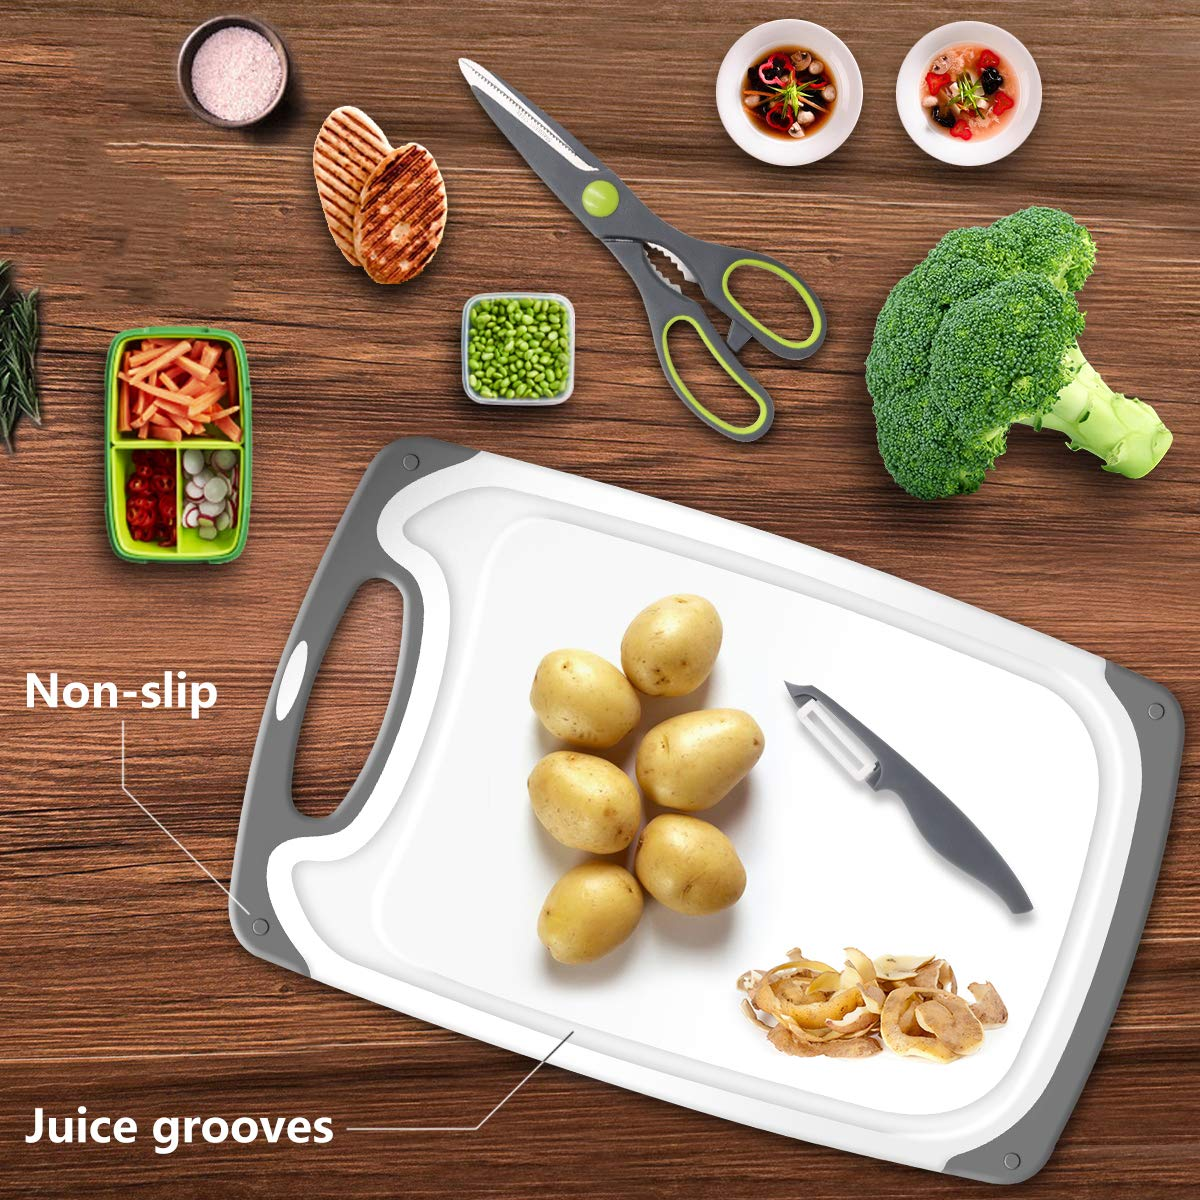 SKERITO Chopping Board Set BPA Free Plastic Kitchen Cutting Boards with Feet